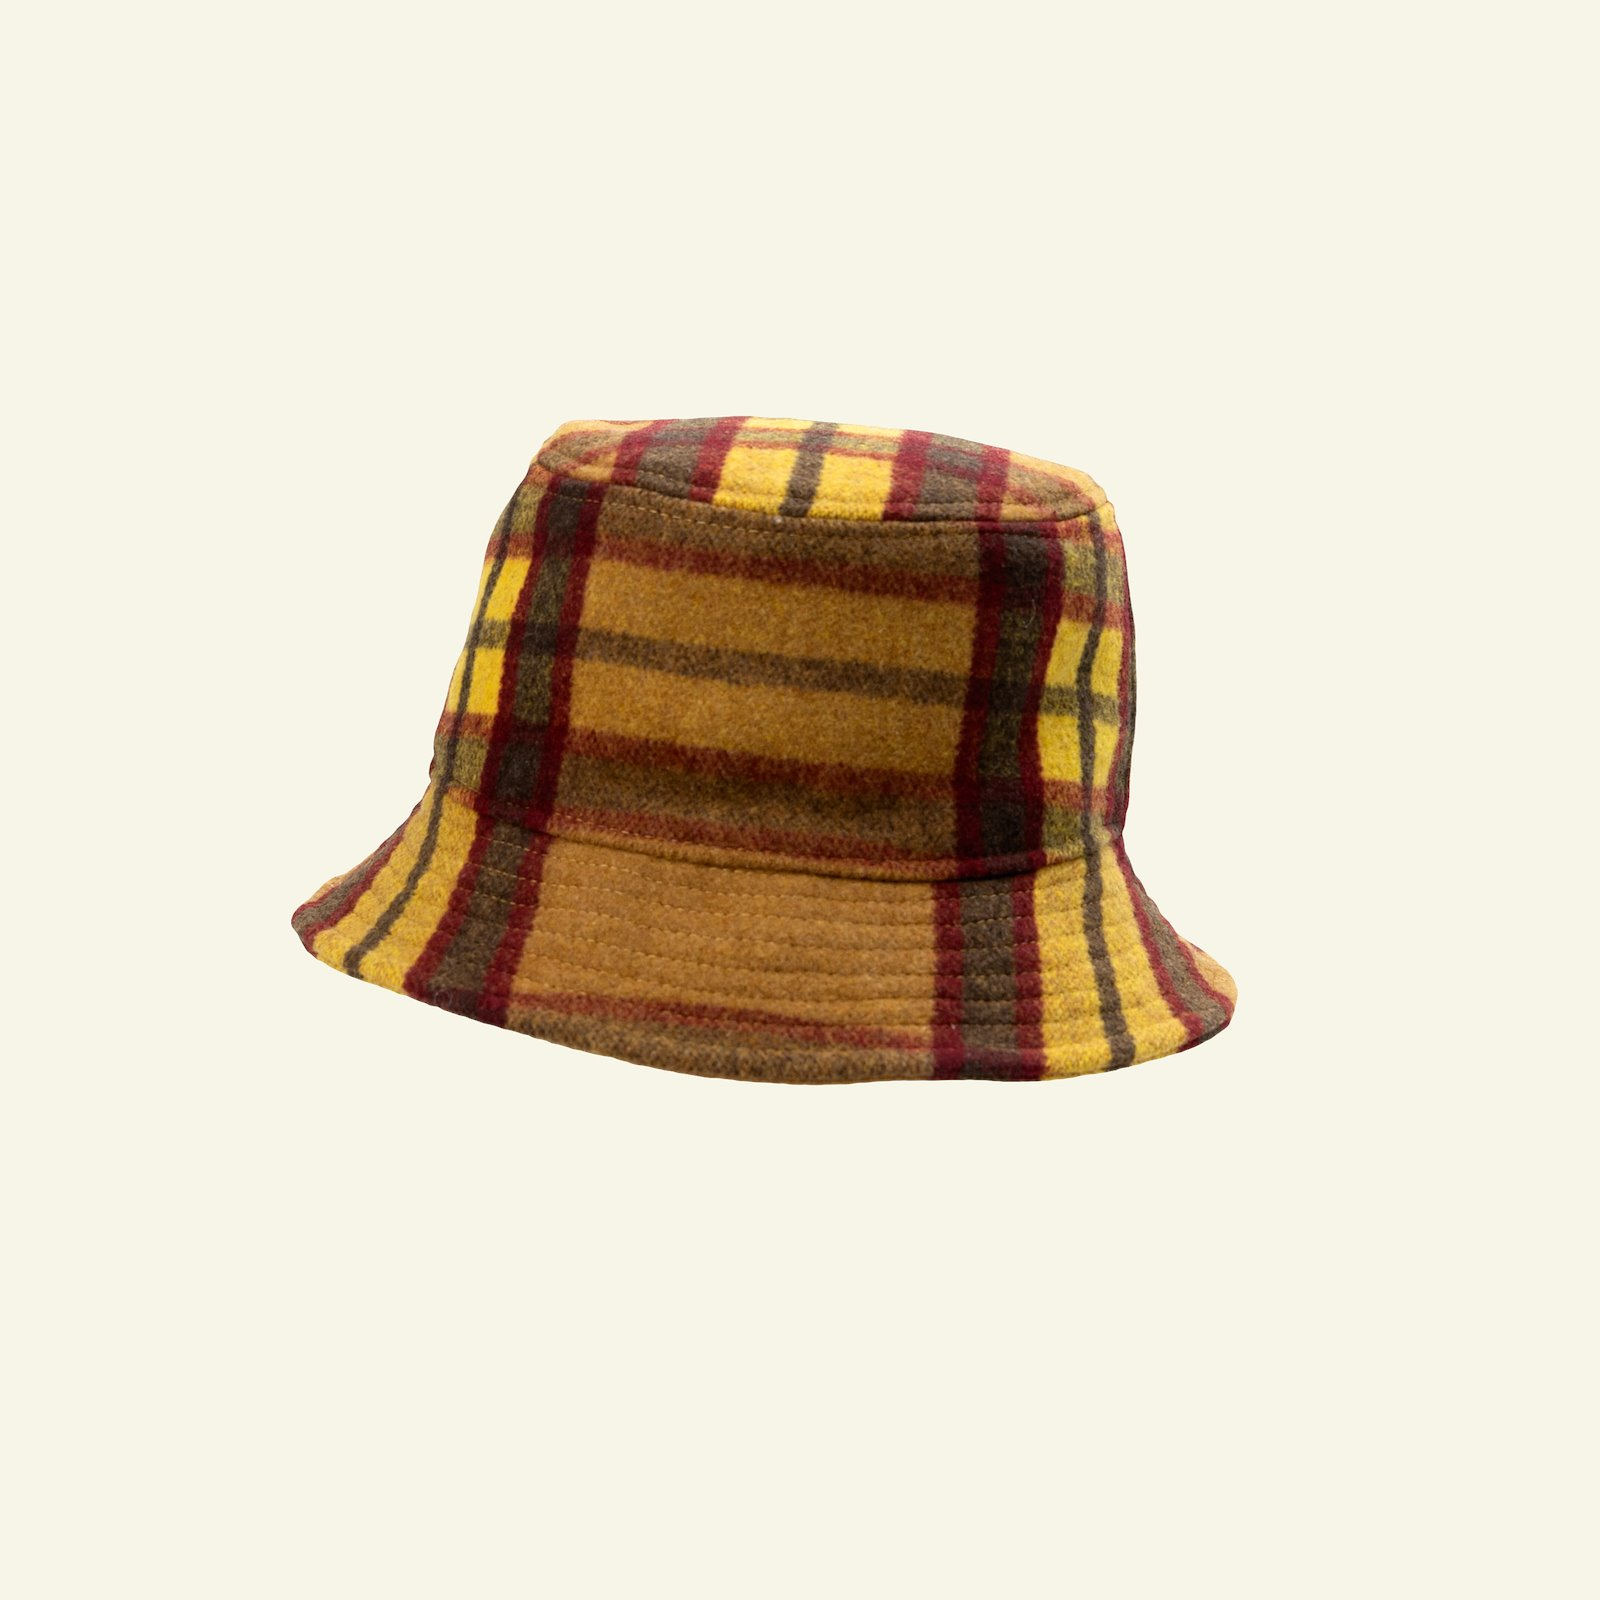 Woven wool with yellow and red YD check p90325_300223_sskit